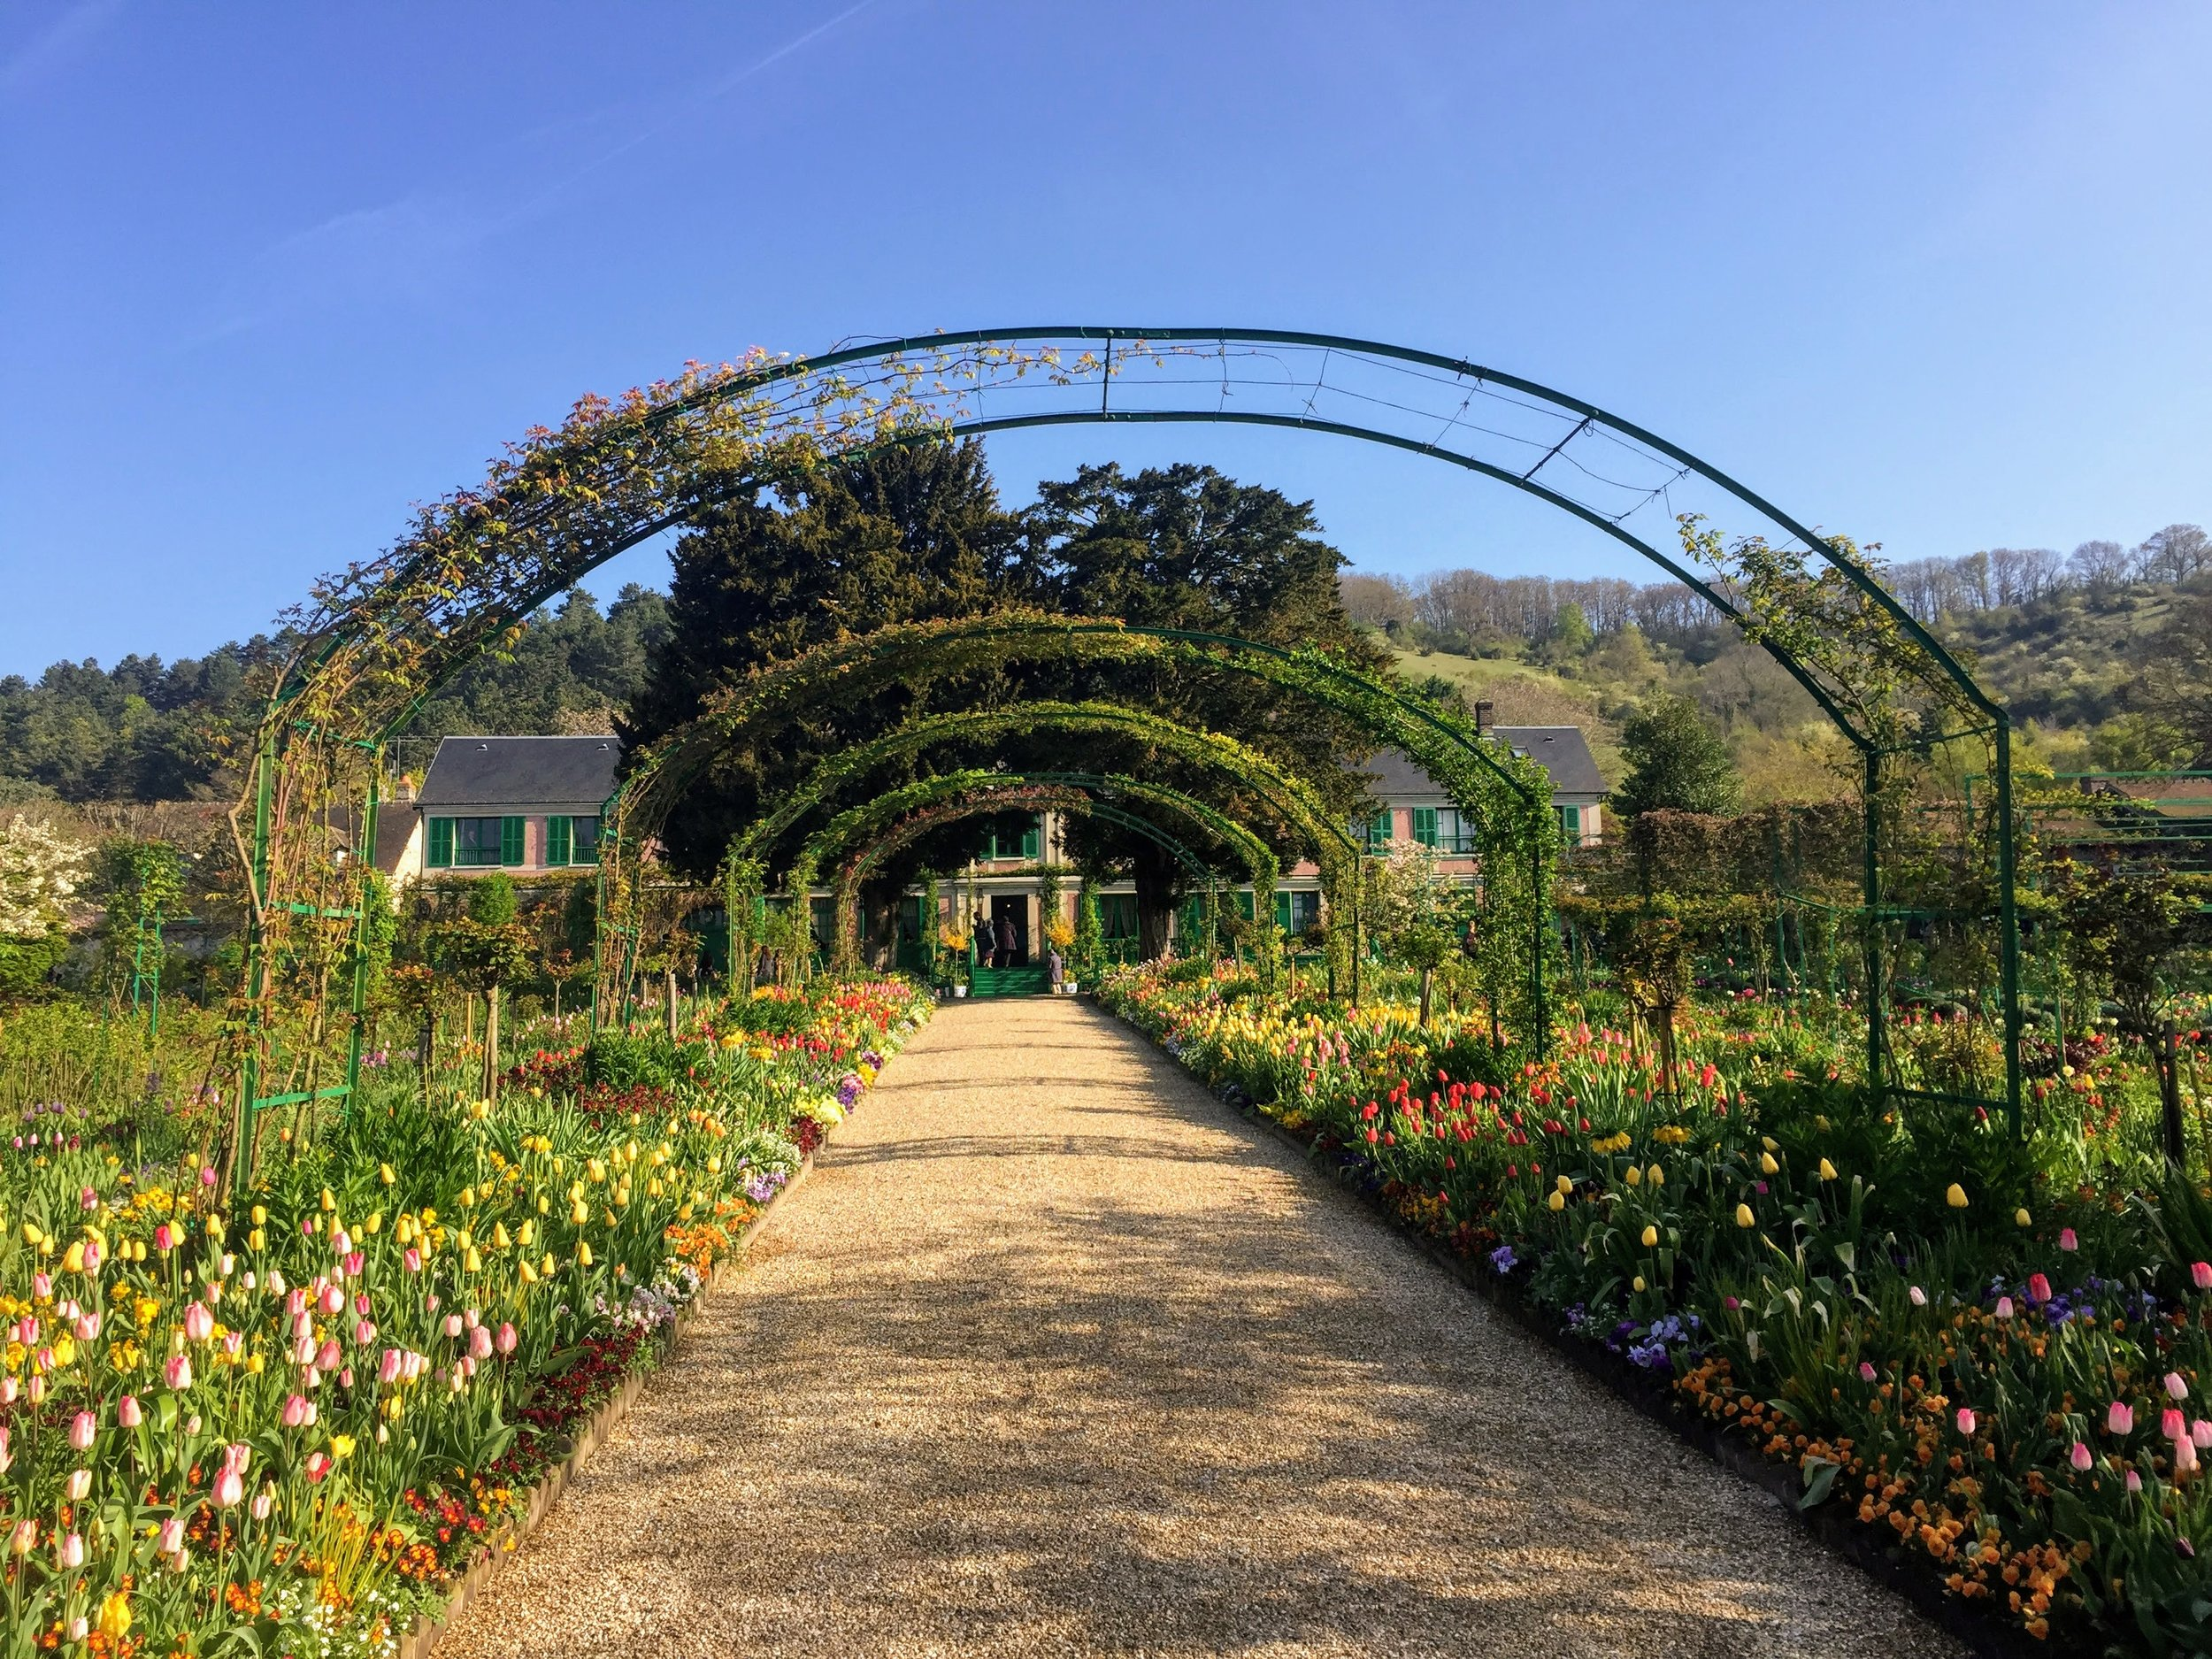 Looking towards Monet's home through the arches